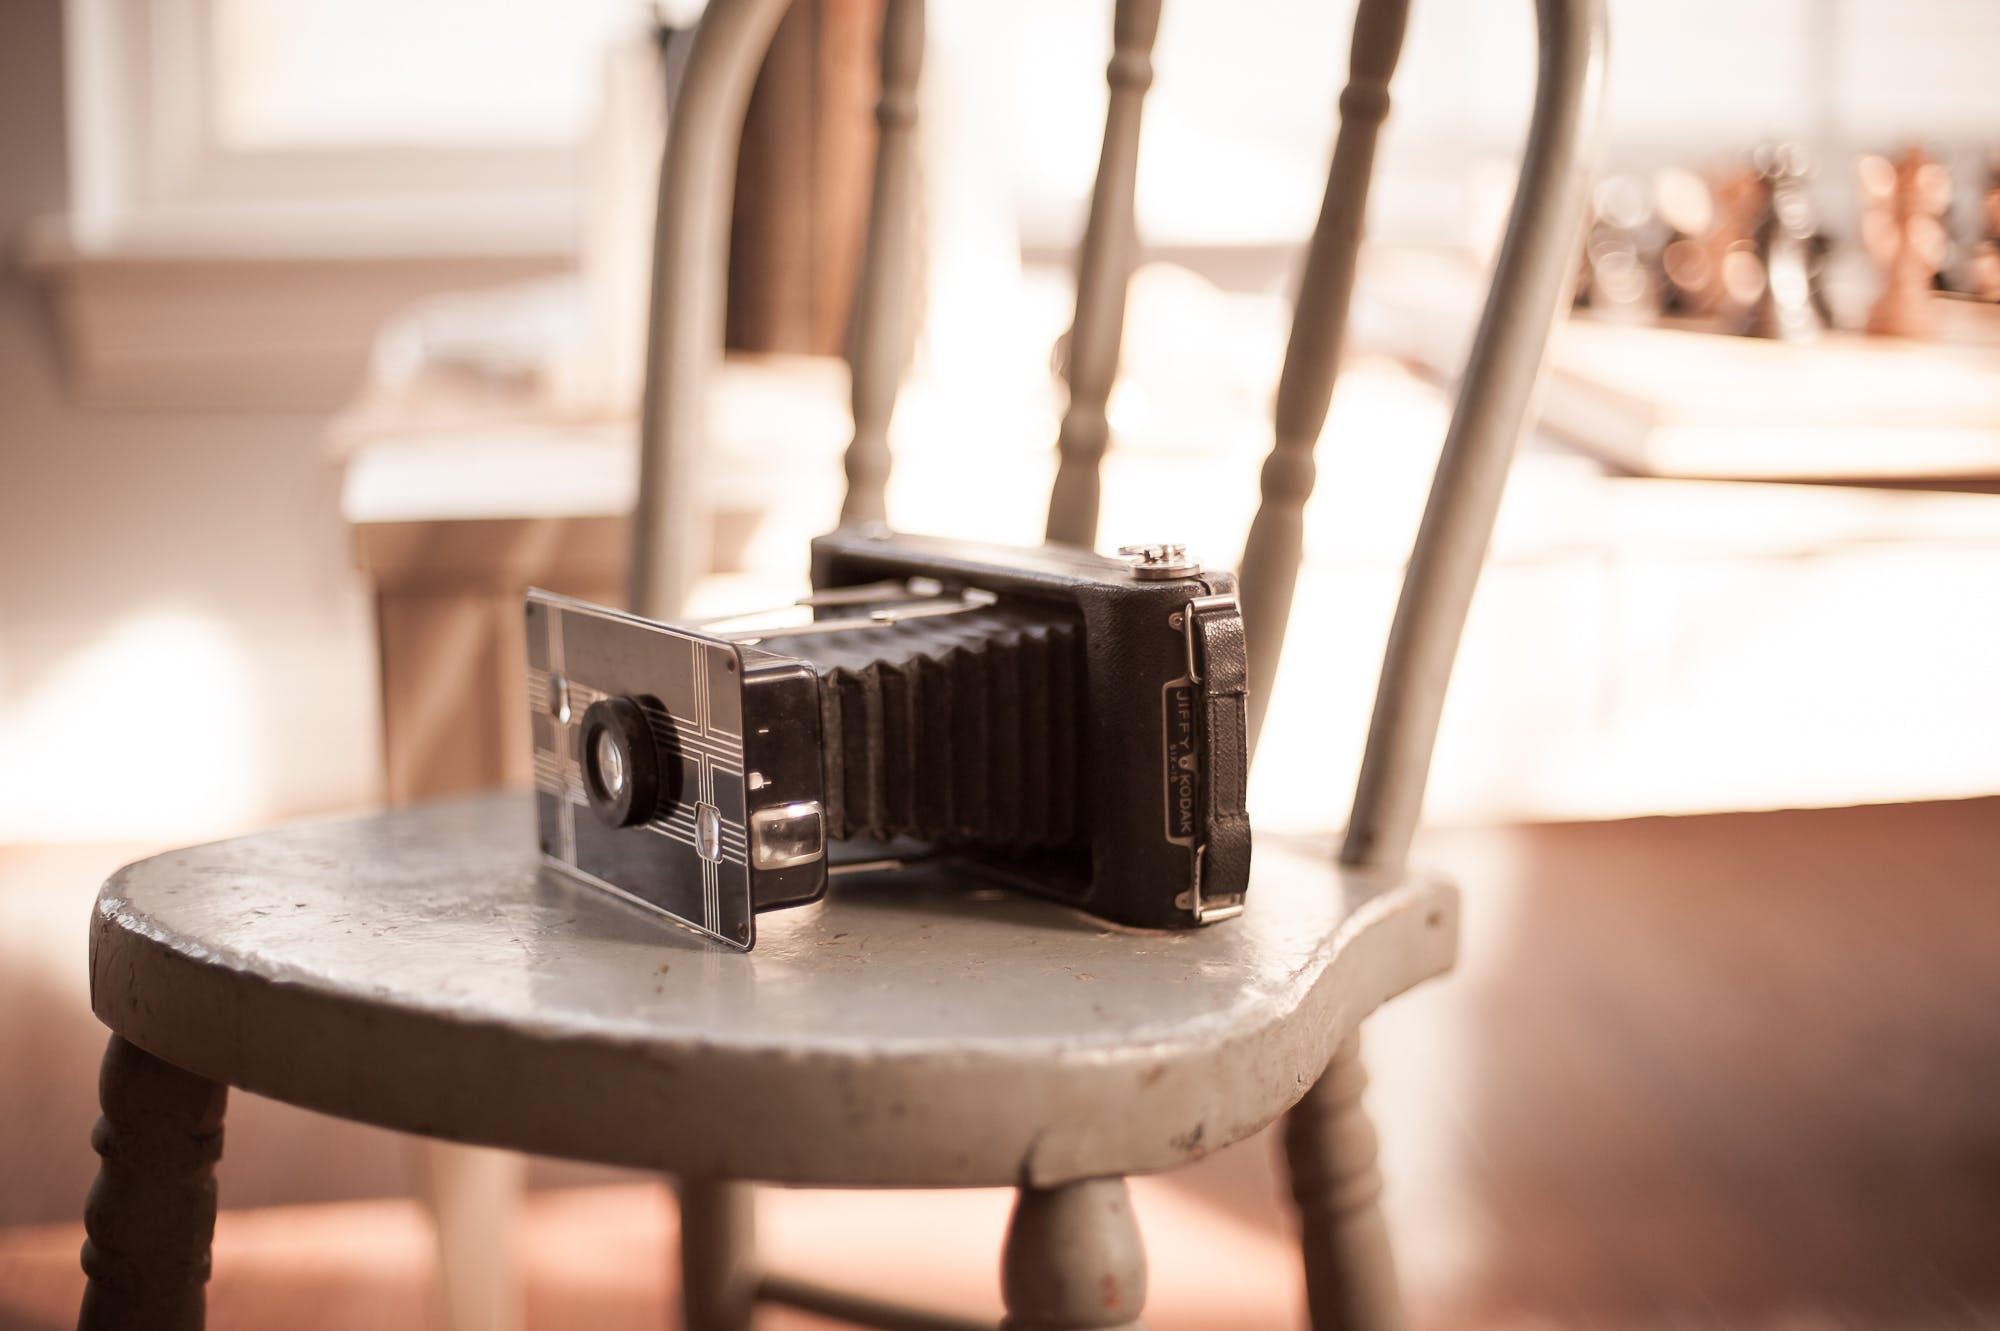 Black Folding Camera on Brown Chair on Focus Photo